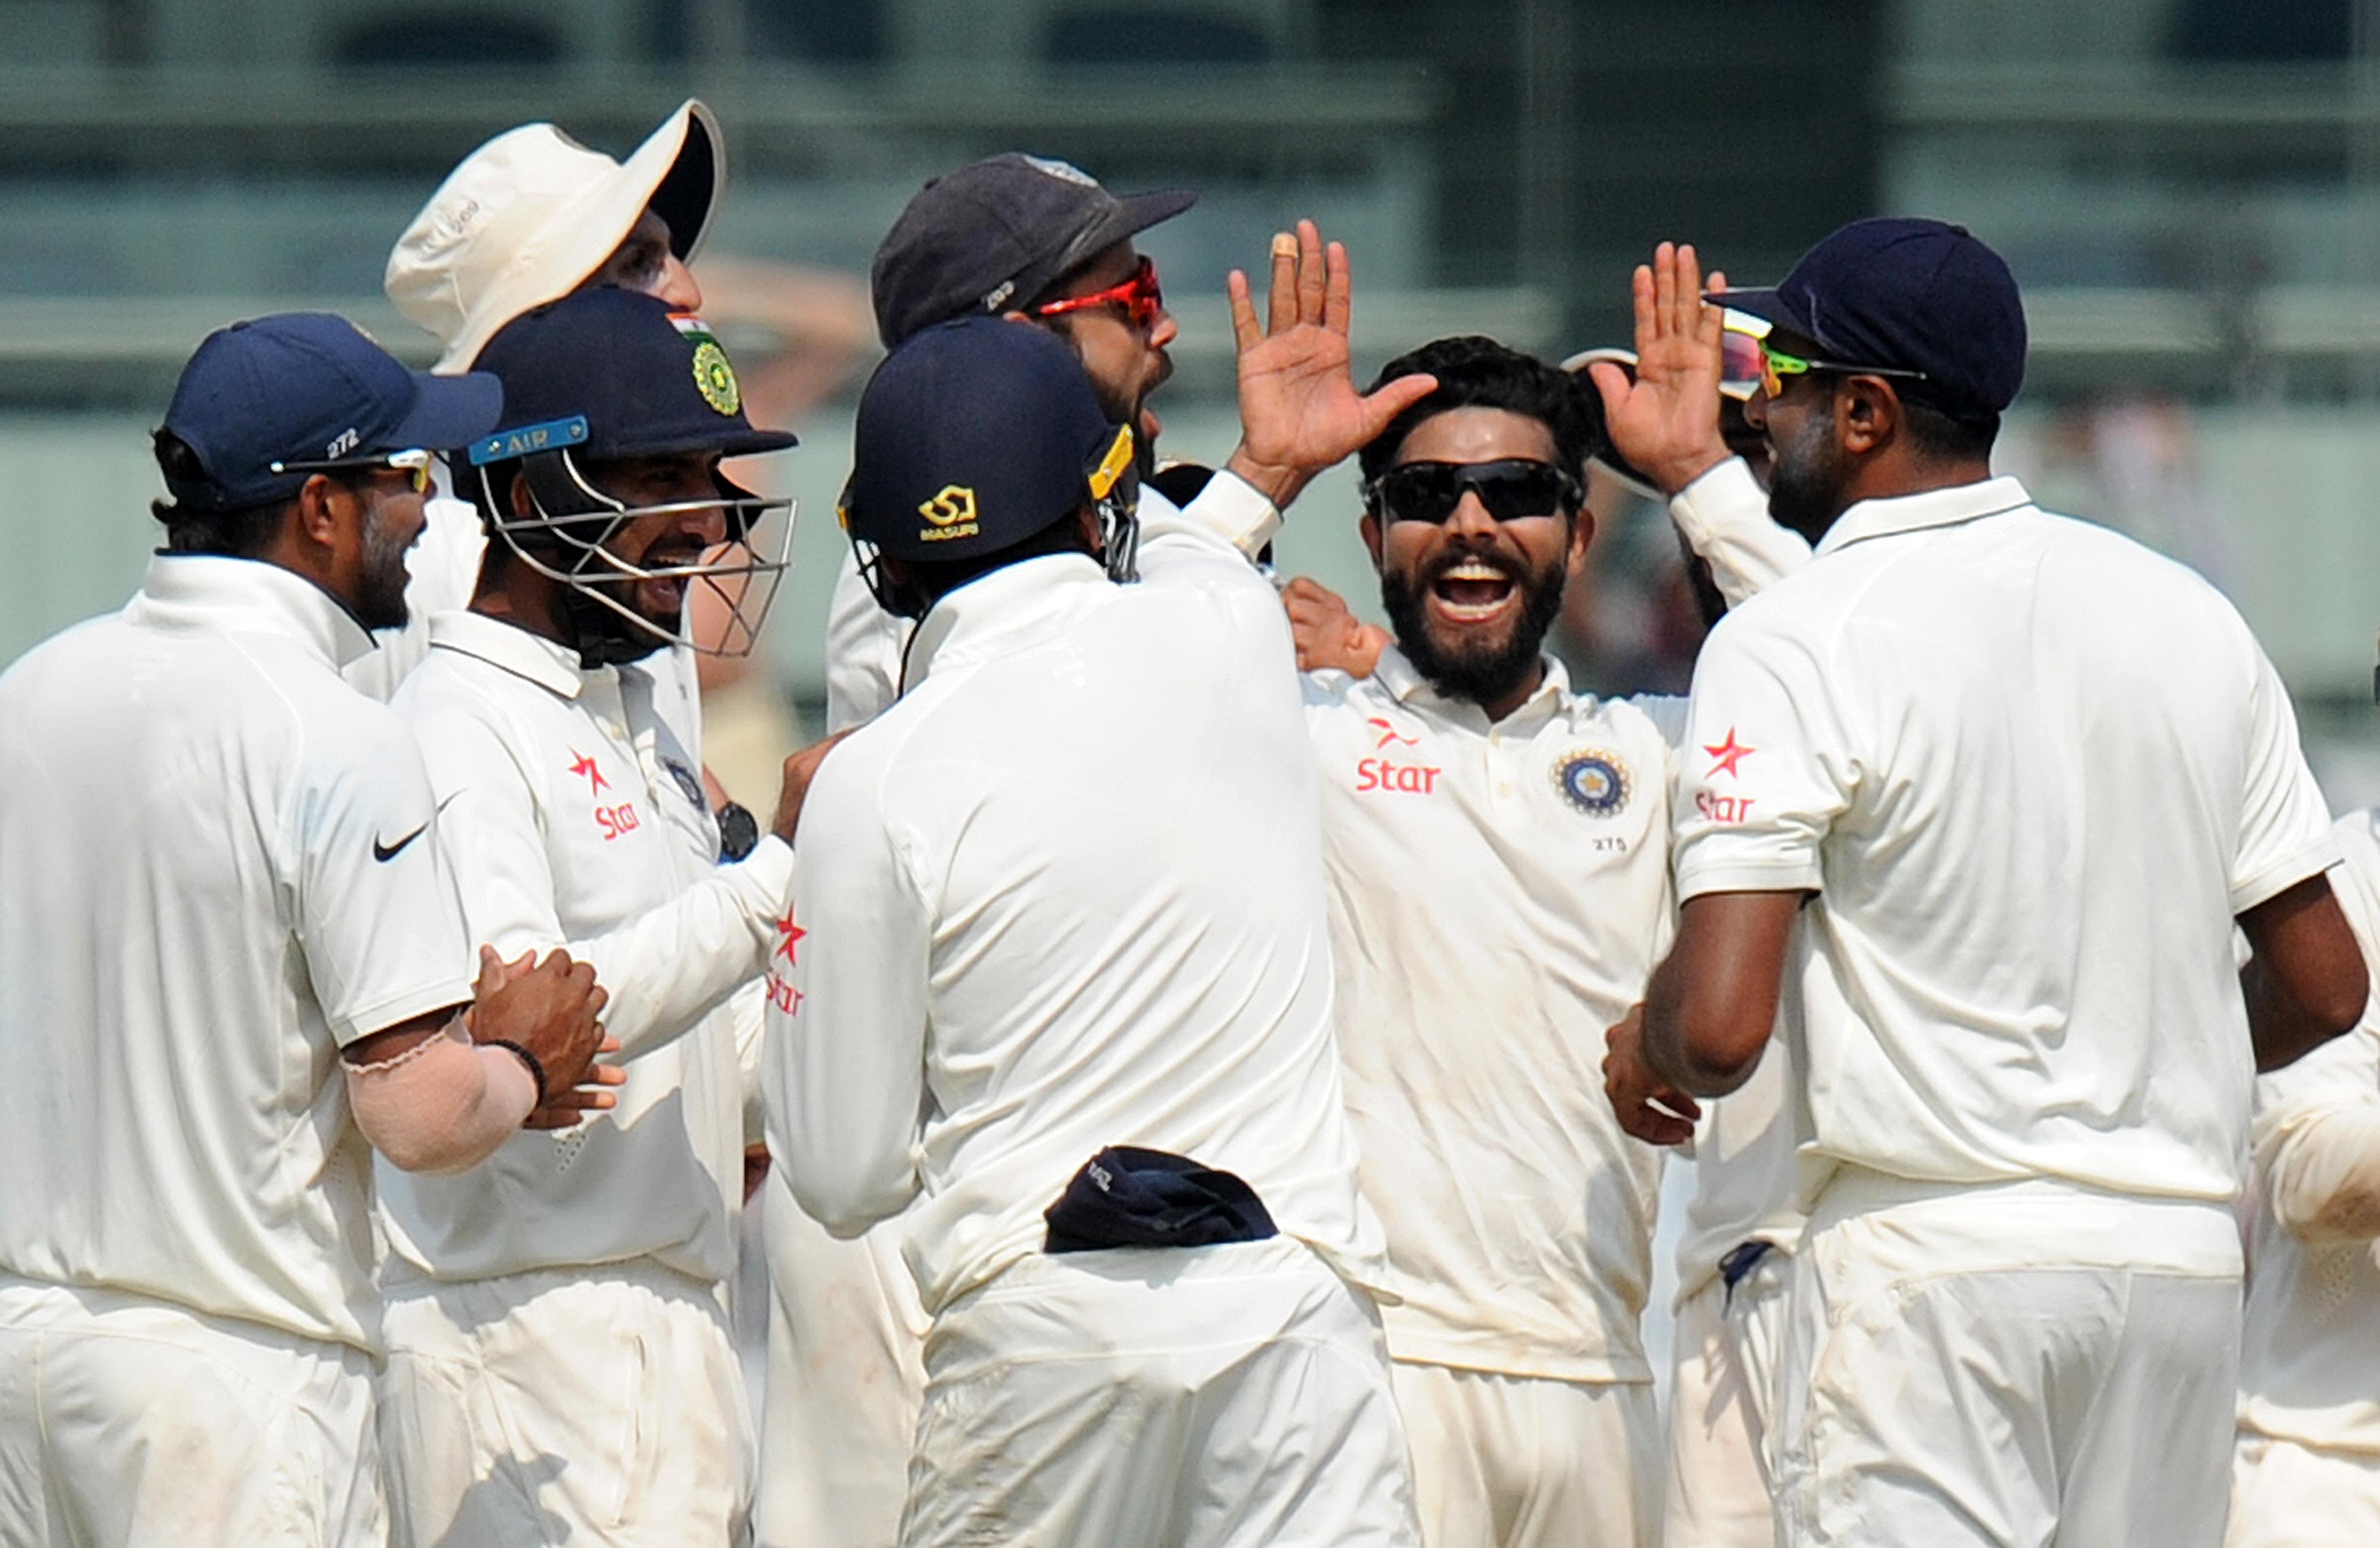 India thumped England during the Test match in Chennai in December 2016